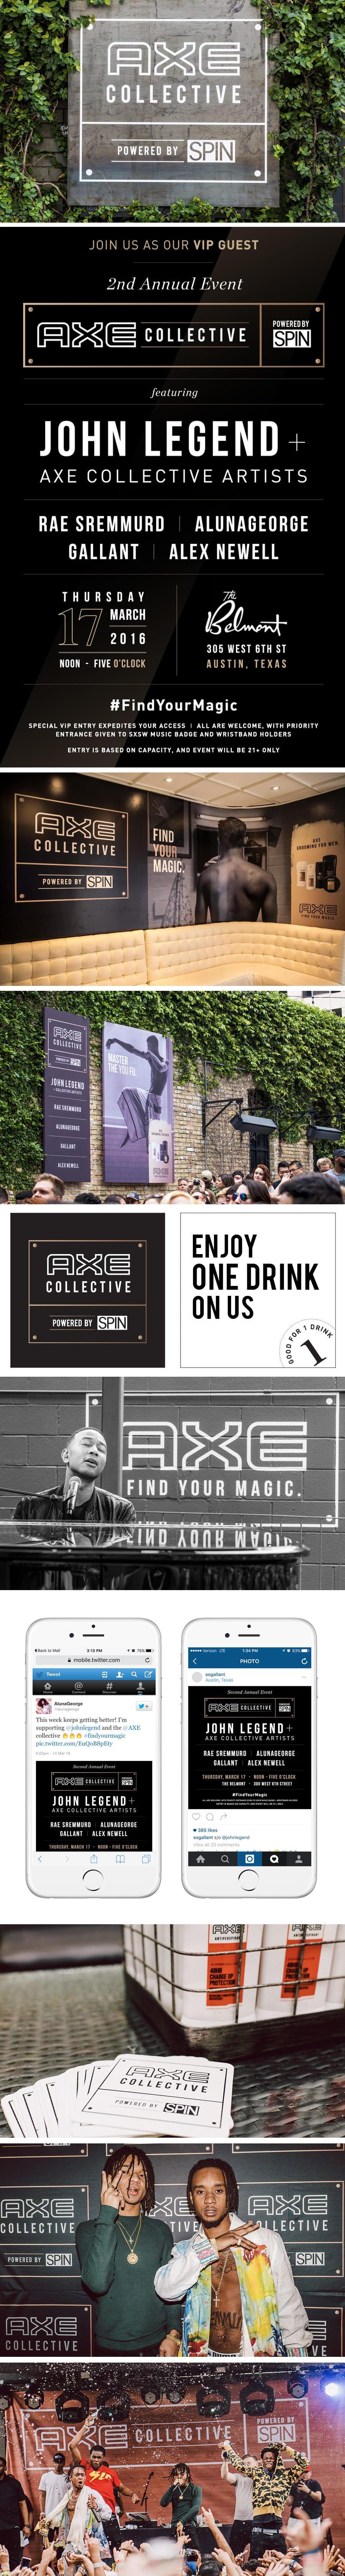 SXSW with Axe Collective